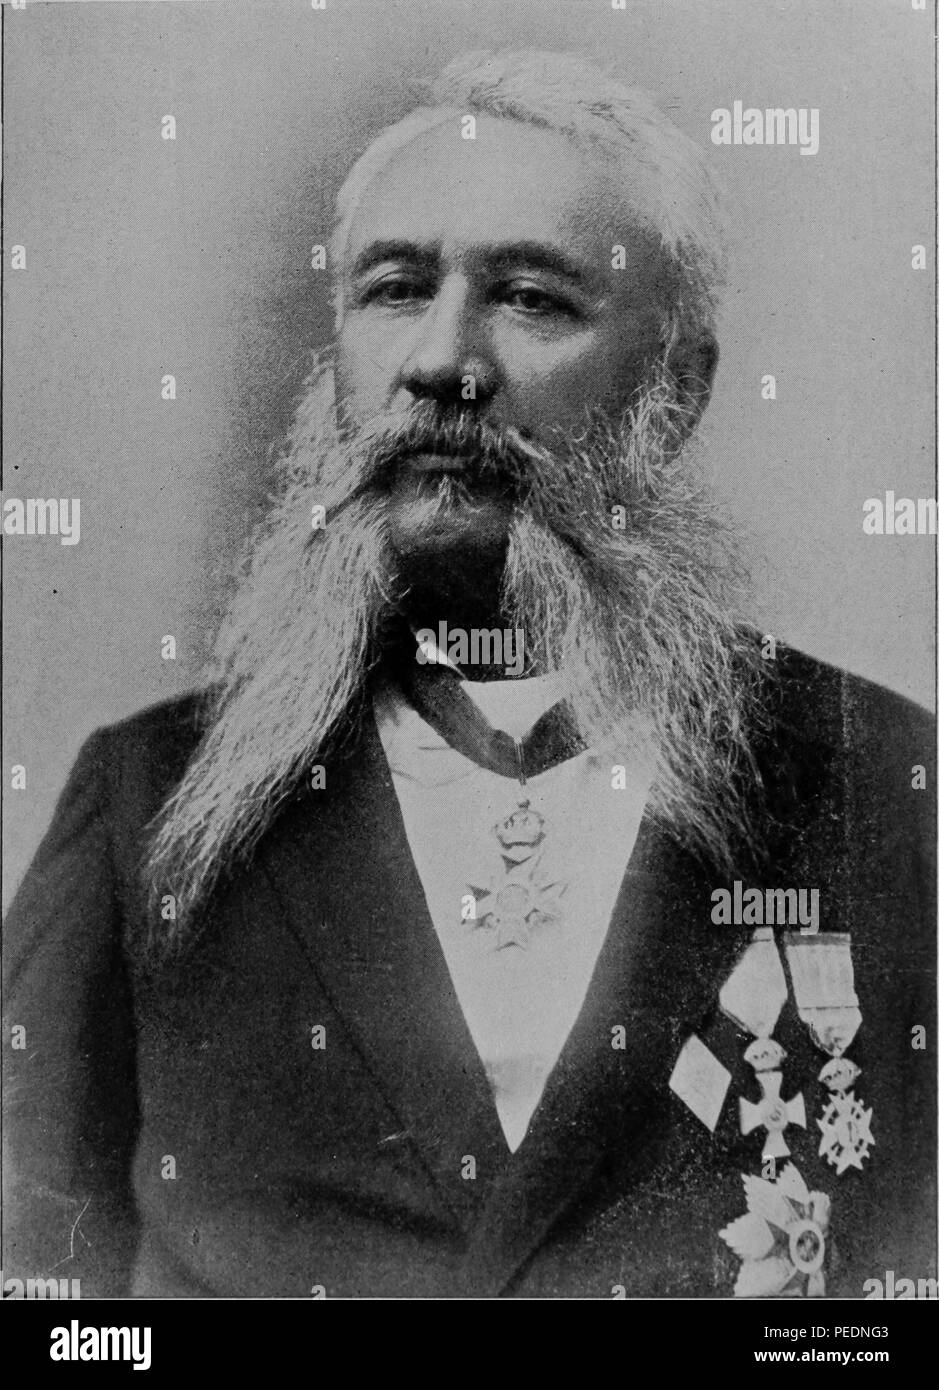 Minister of Foreign Affairs and large sugar planter JA Cummings, 1900. Courtesy Internet Archive. () - Stock Image